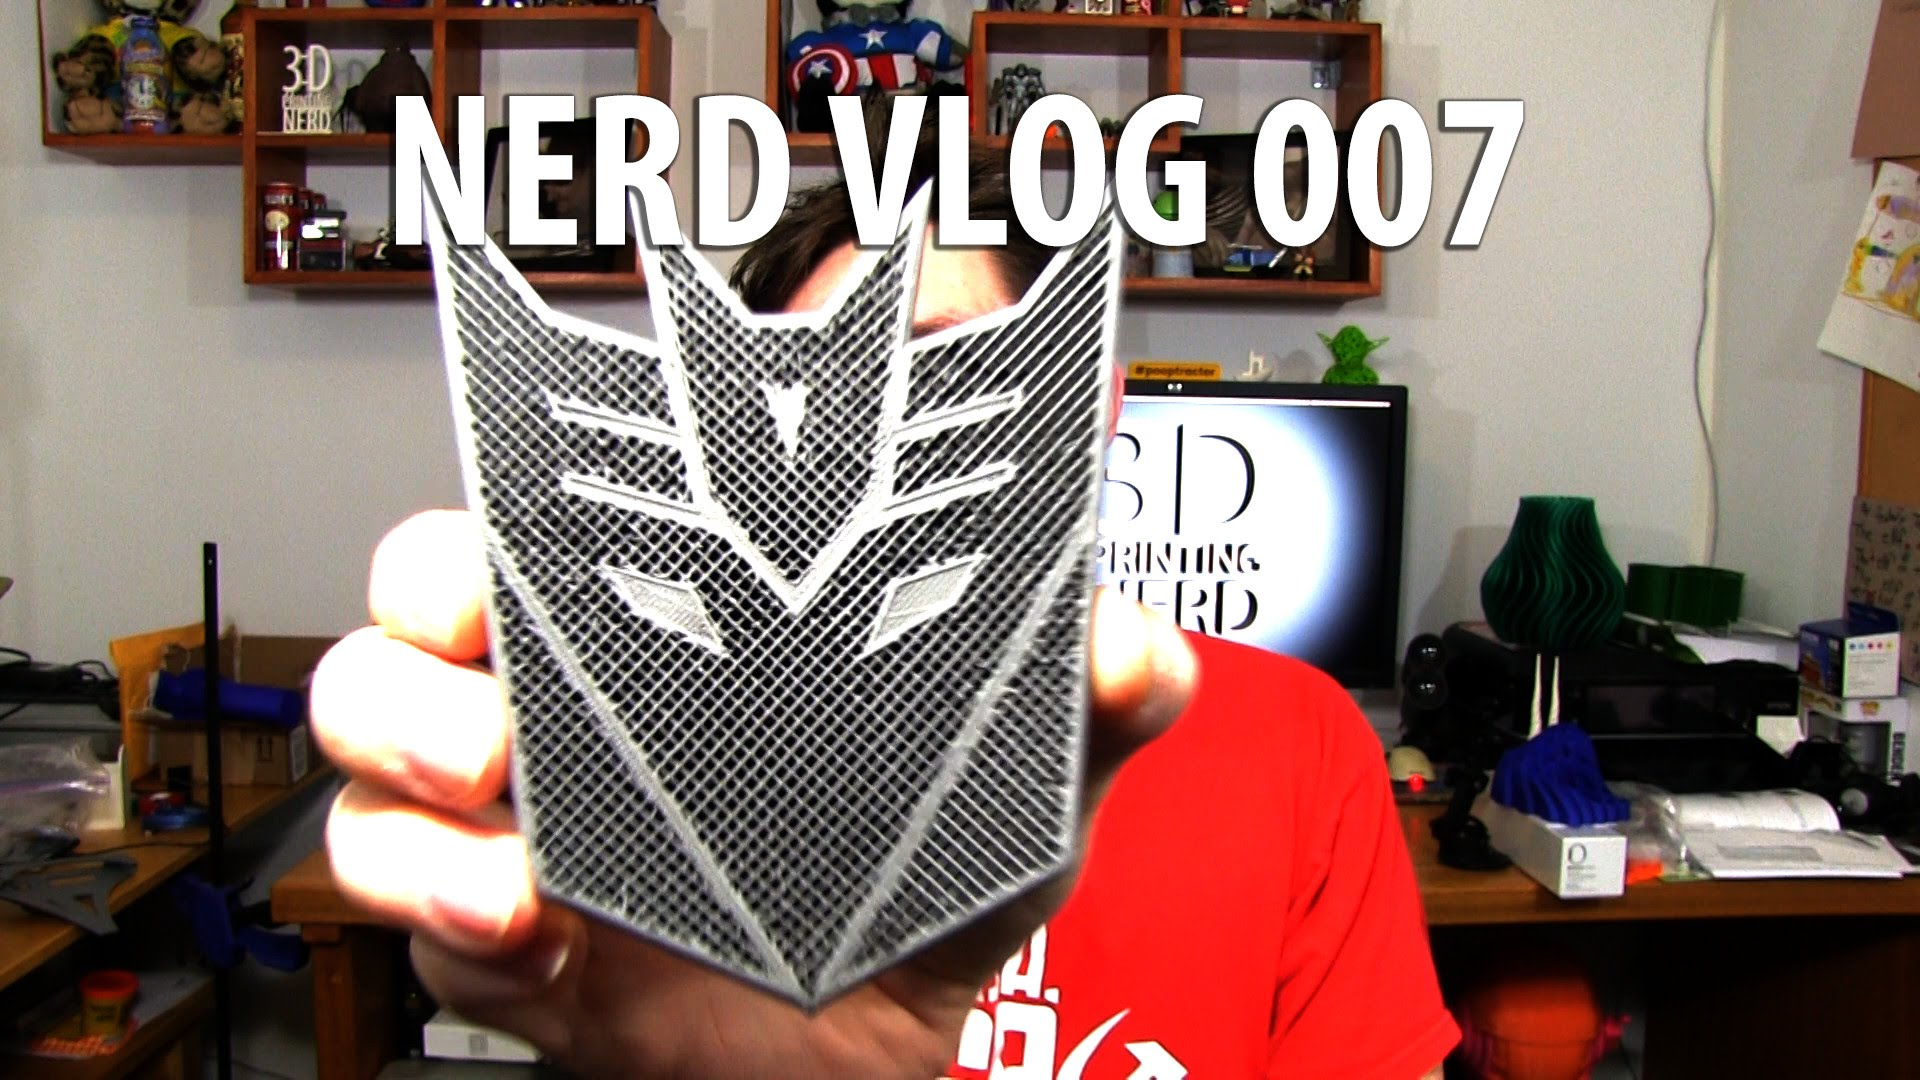 3D Printing: Nerd Vlog 007 with Proto Pasta Stainless, Carbon Fiber, Superman, Transformers